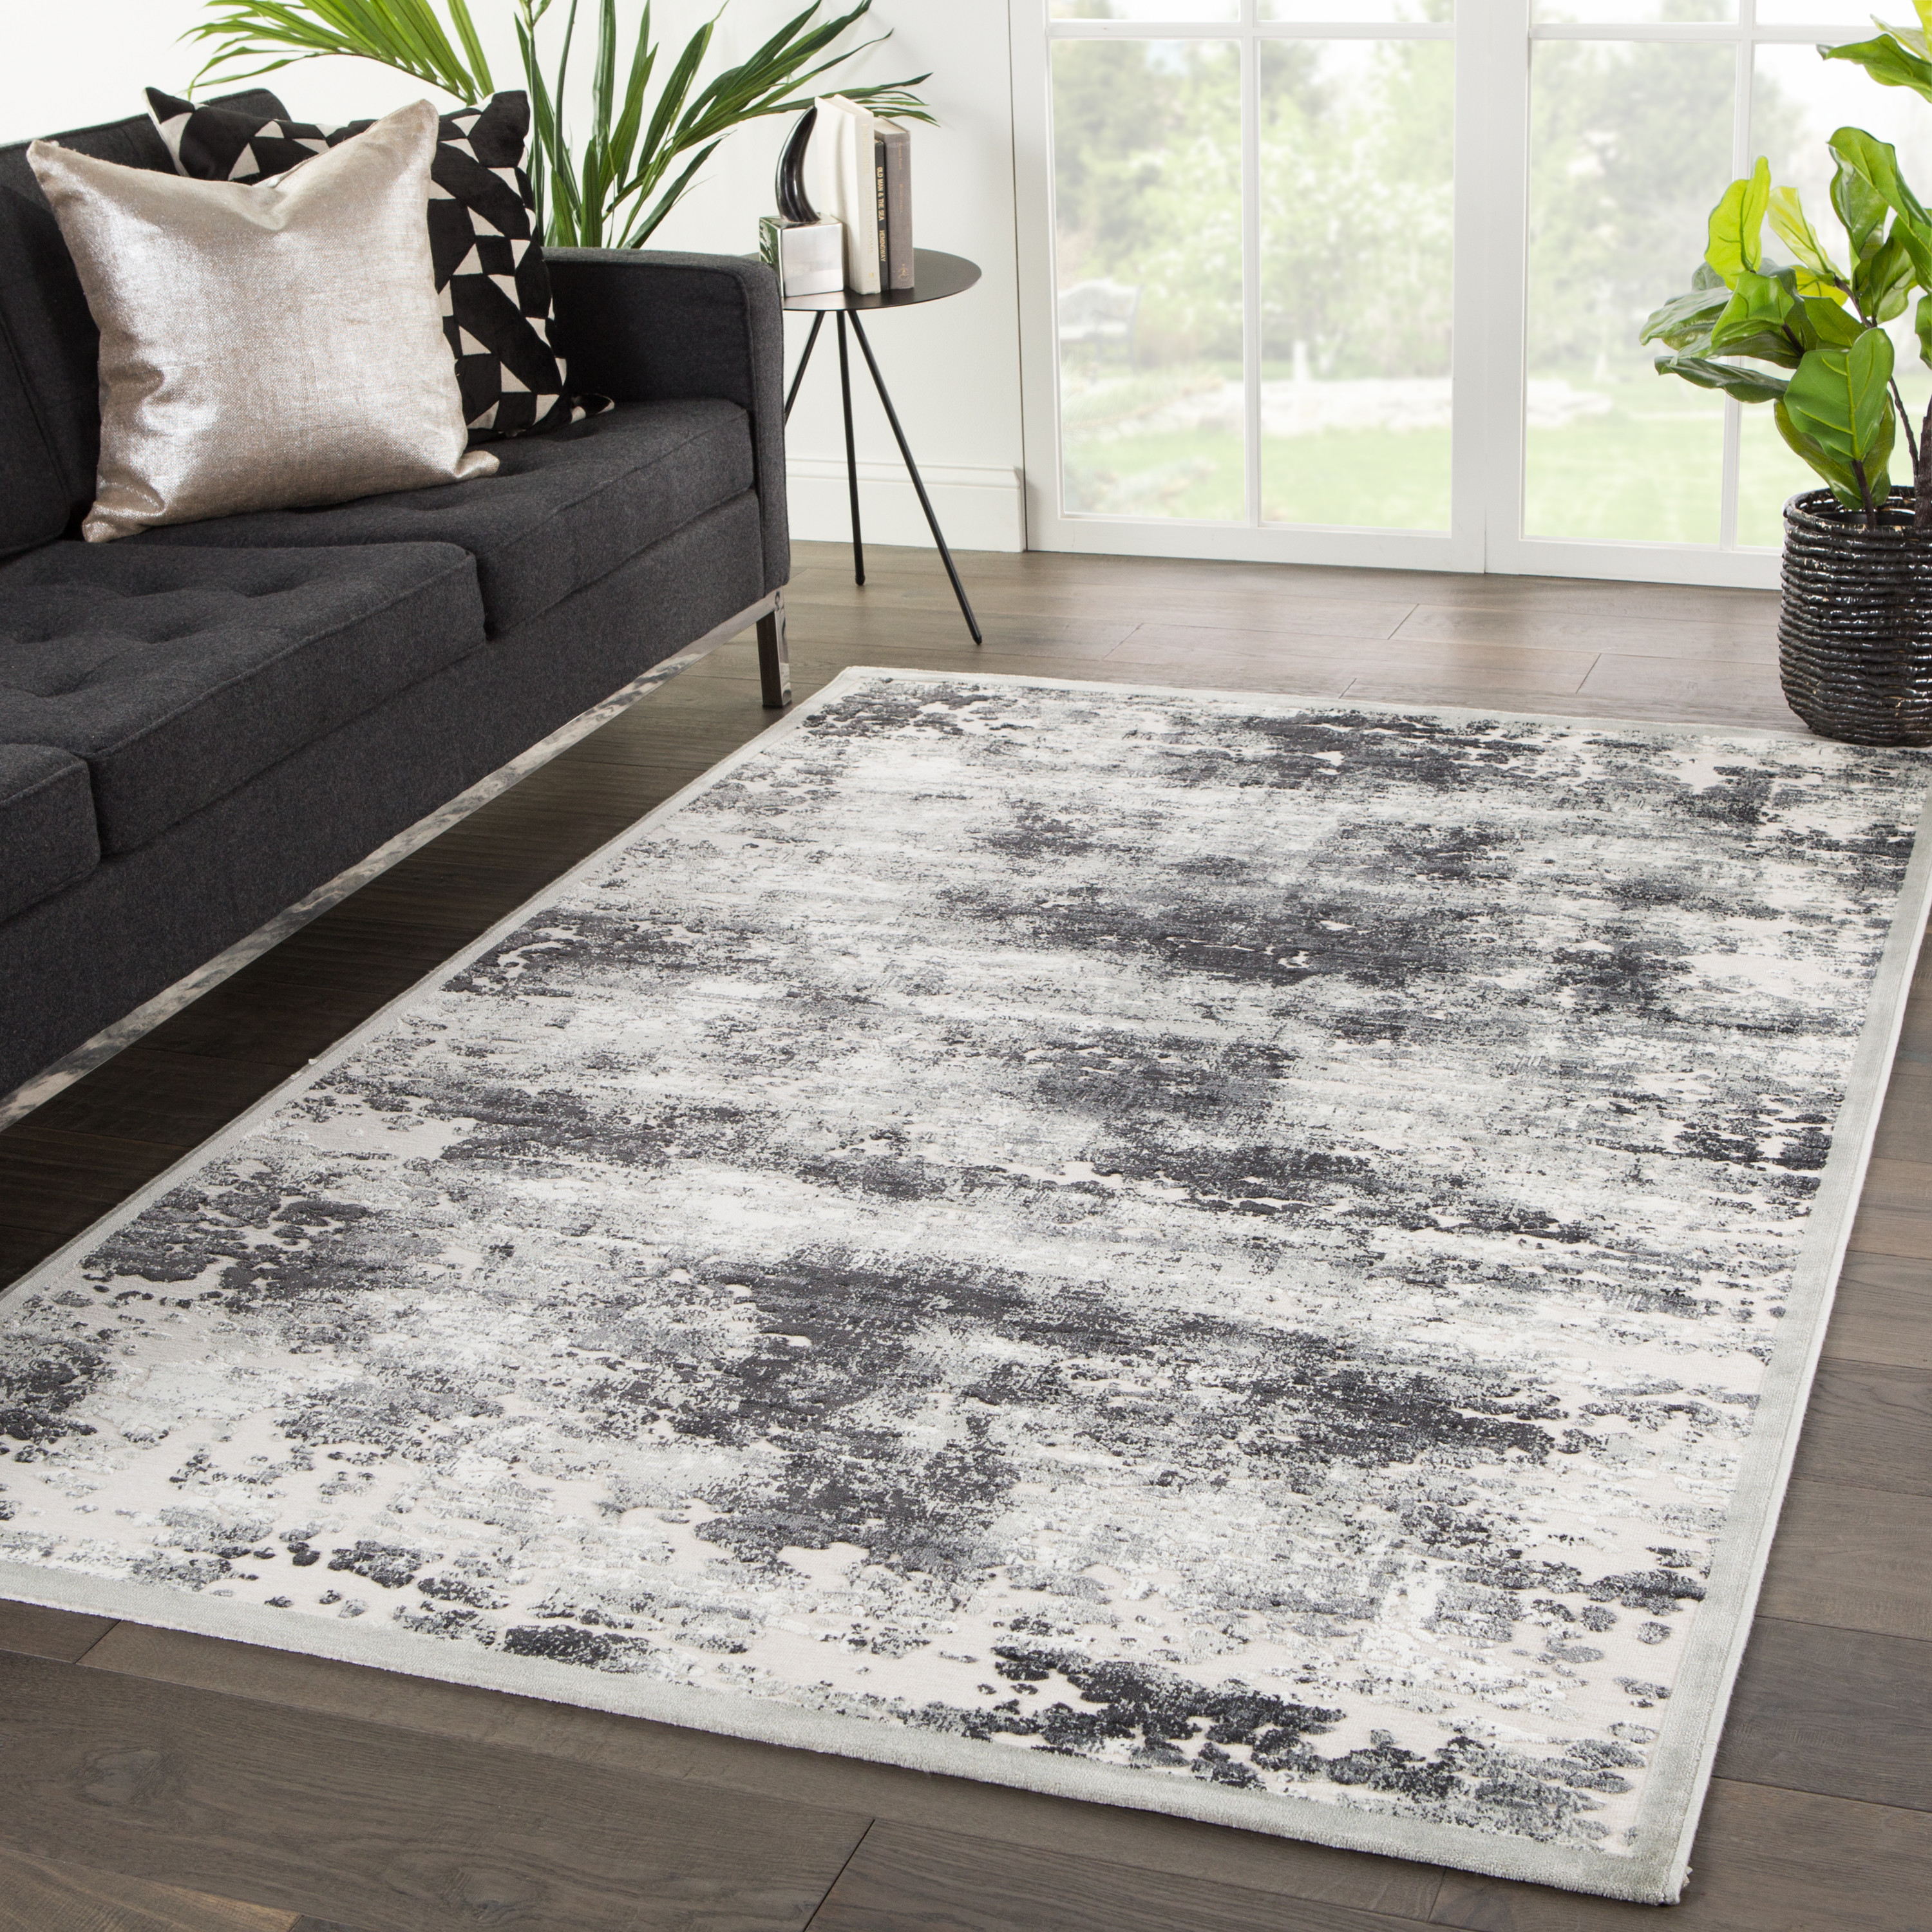 Fables Trista Abstract Gray White Area Rug 7 6 X9 6 By Jaipur Living Nis870758587 Designer Furniture Gallery